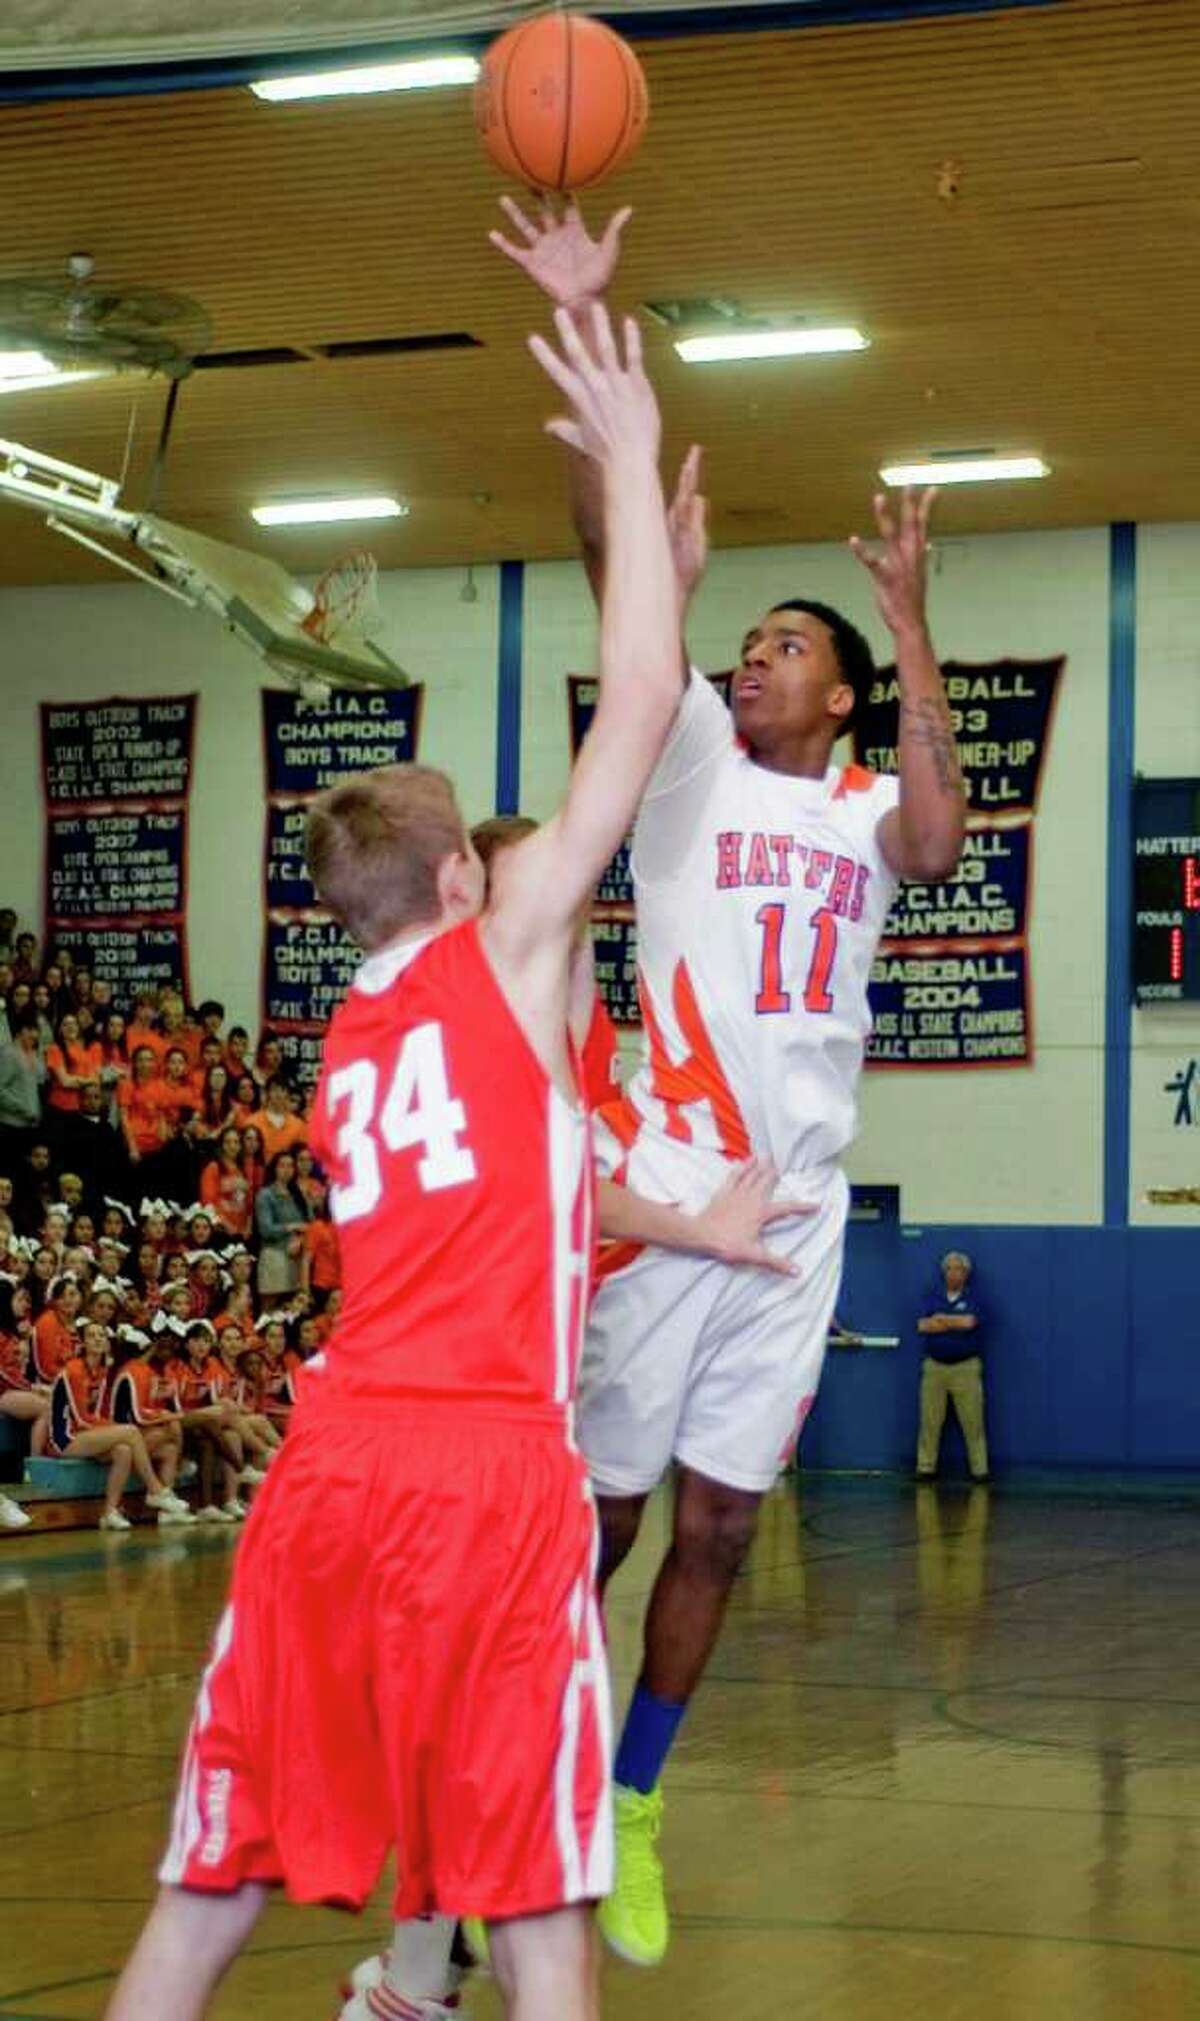 Danbury High School's Timothy Jackson releases the ball against Greenwich High School during a game at Danbury. Wednesday, Feb. 22, 2012